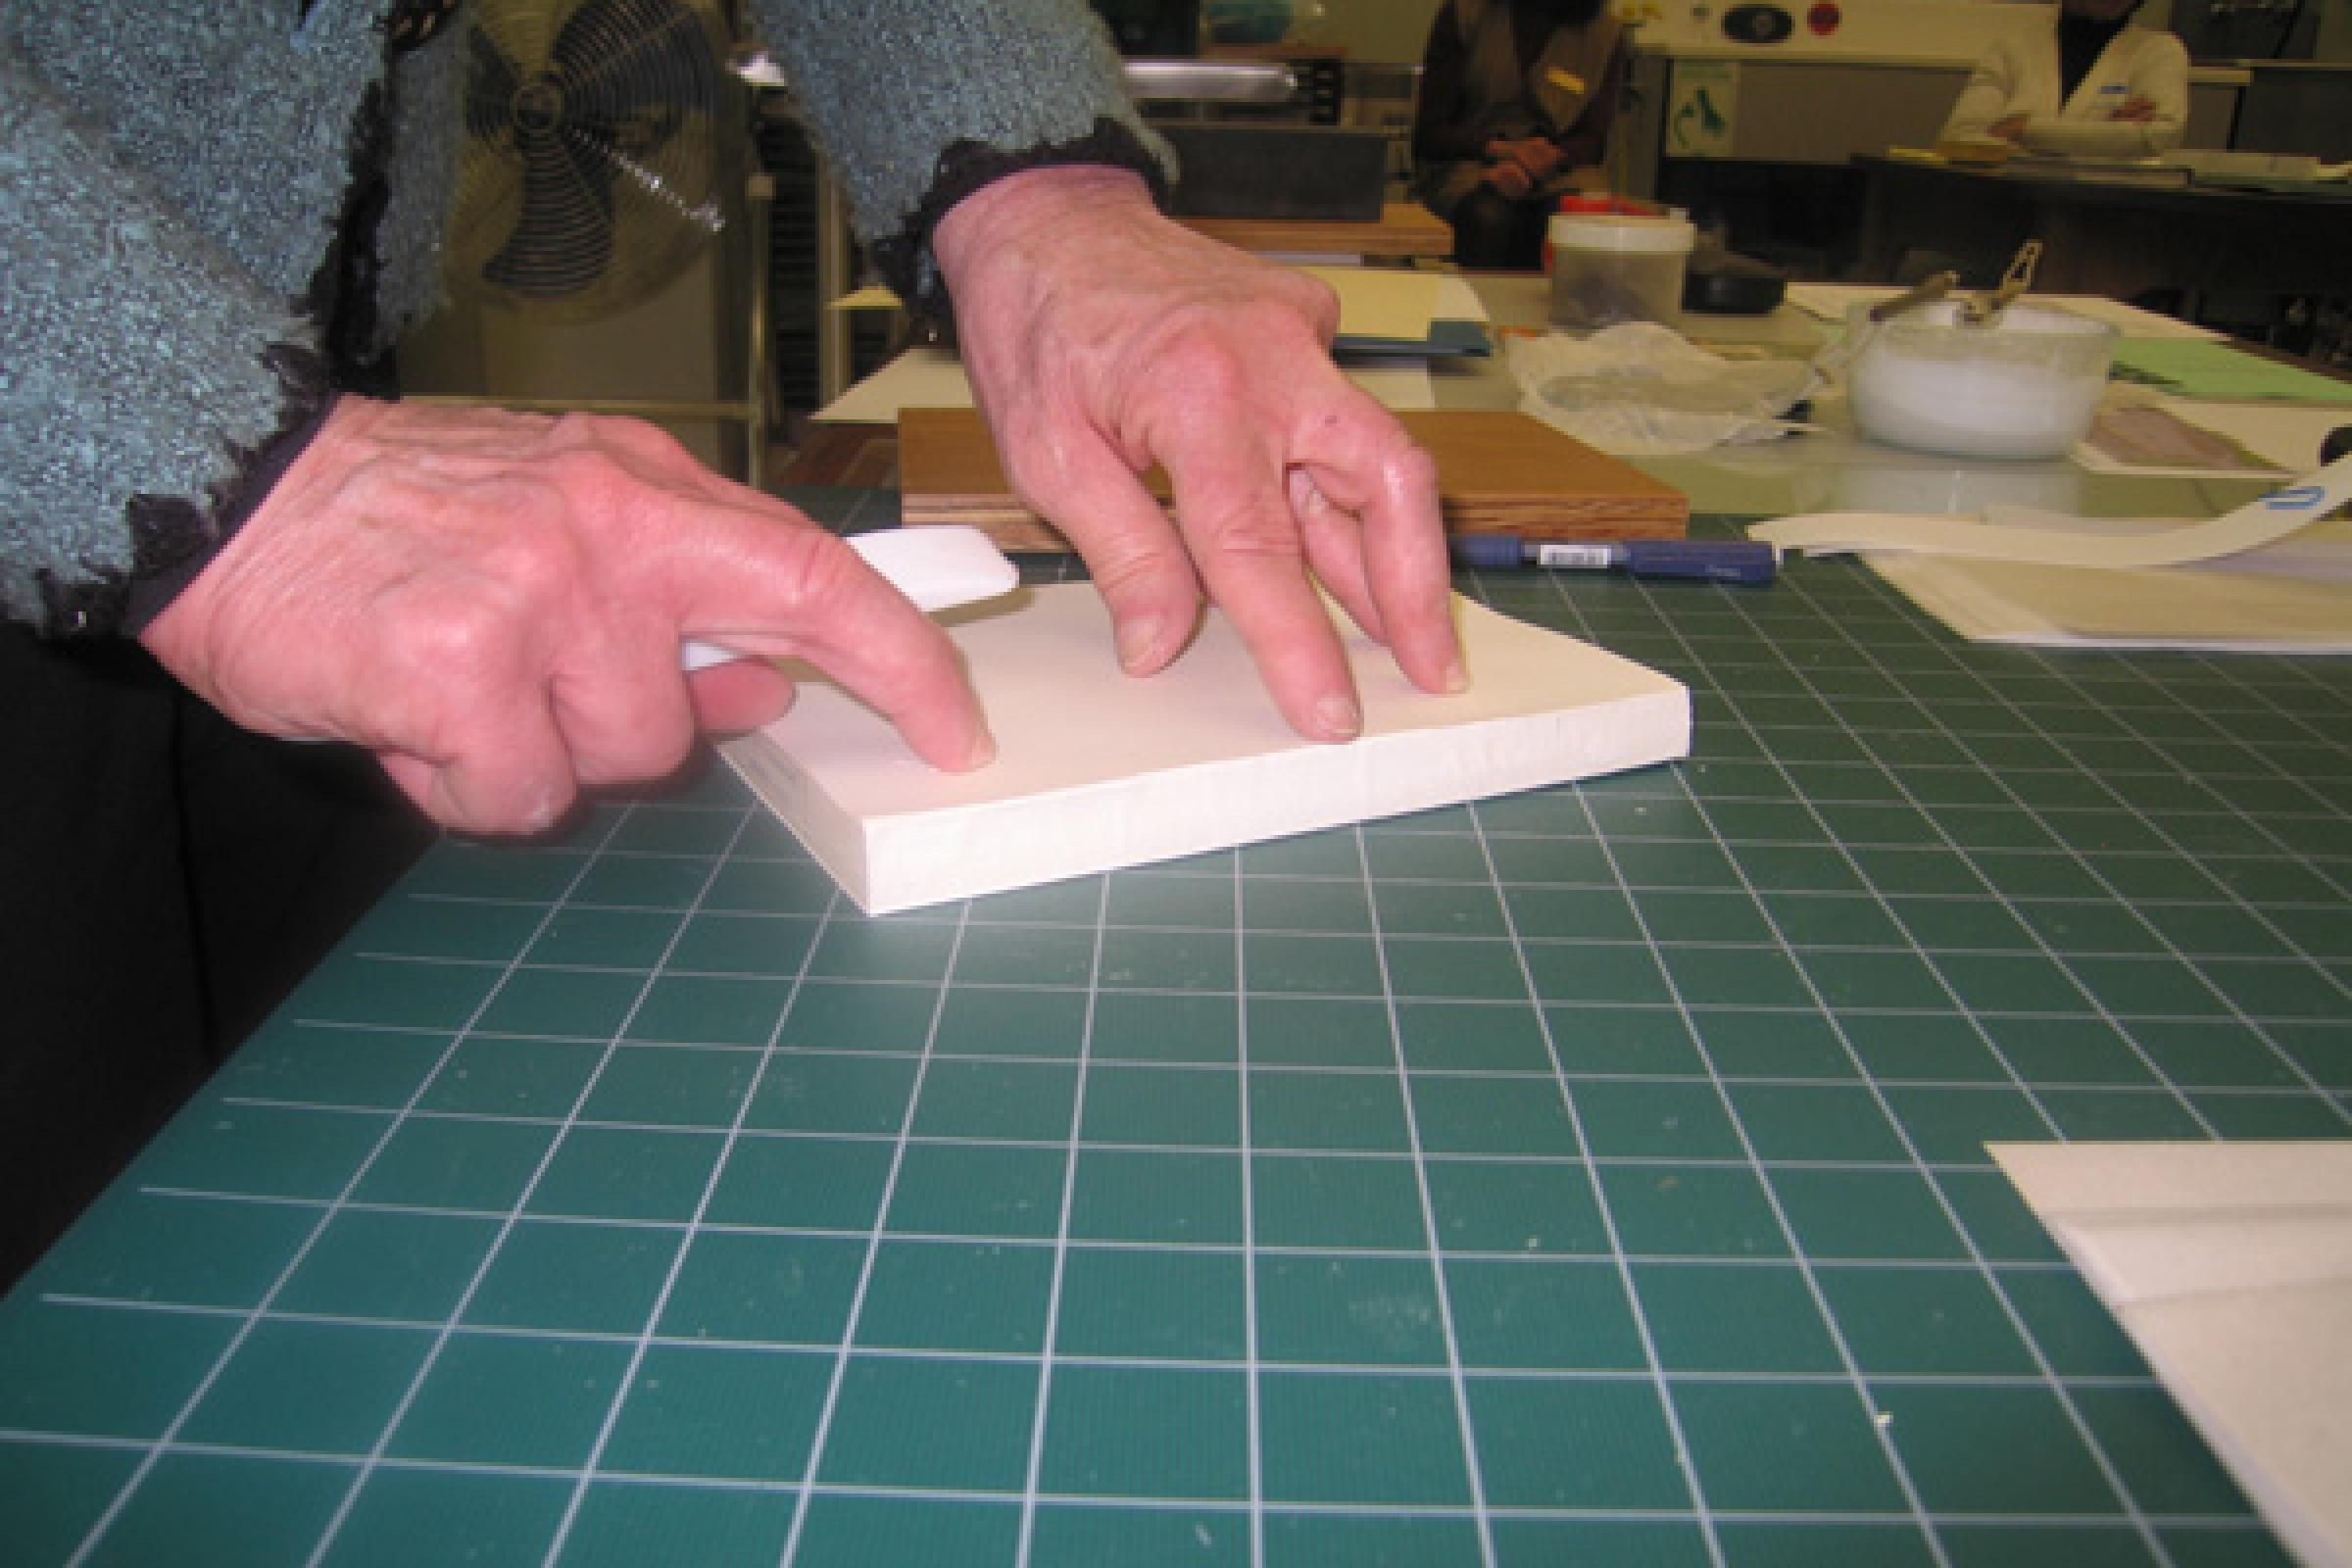 A quick demonstration on fitting endpapers before students attempt the procedure...